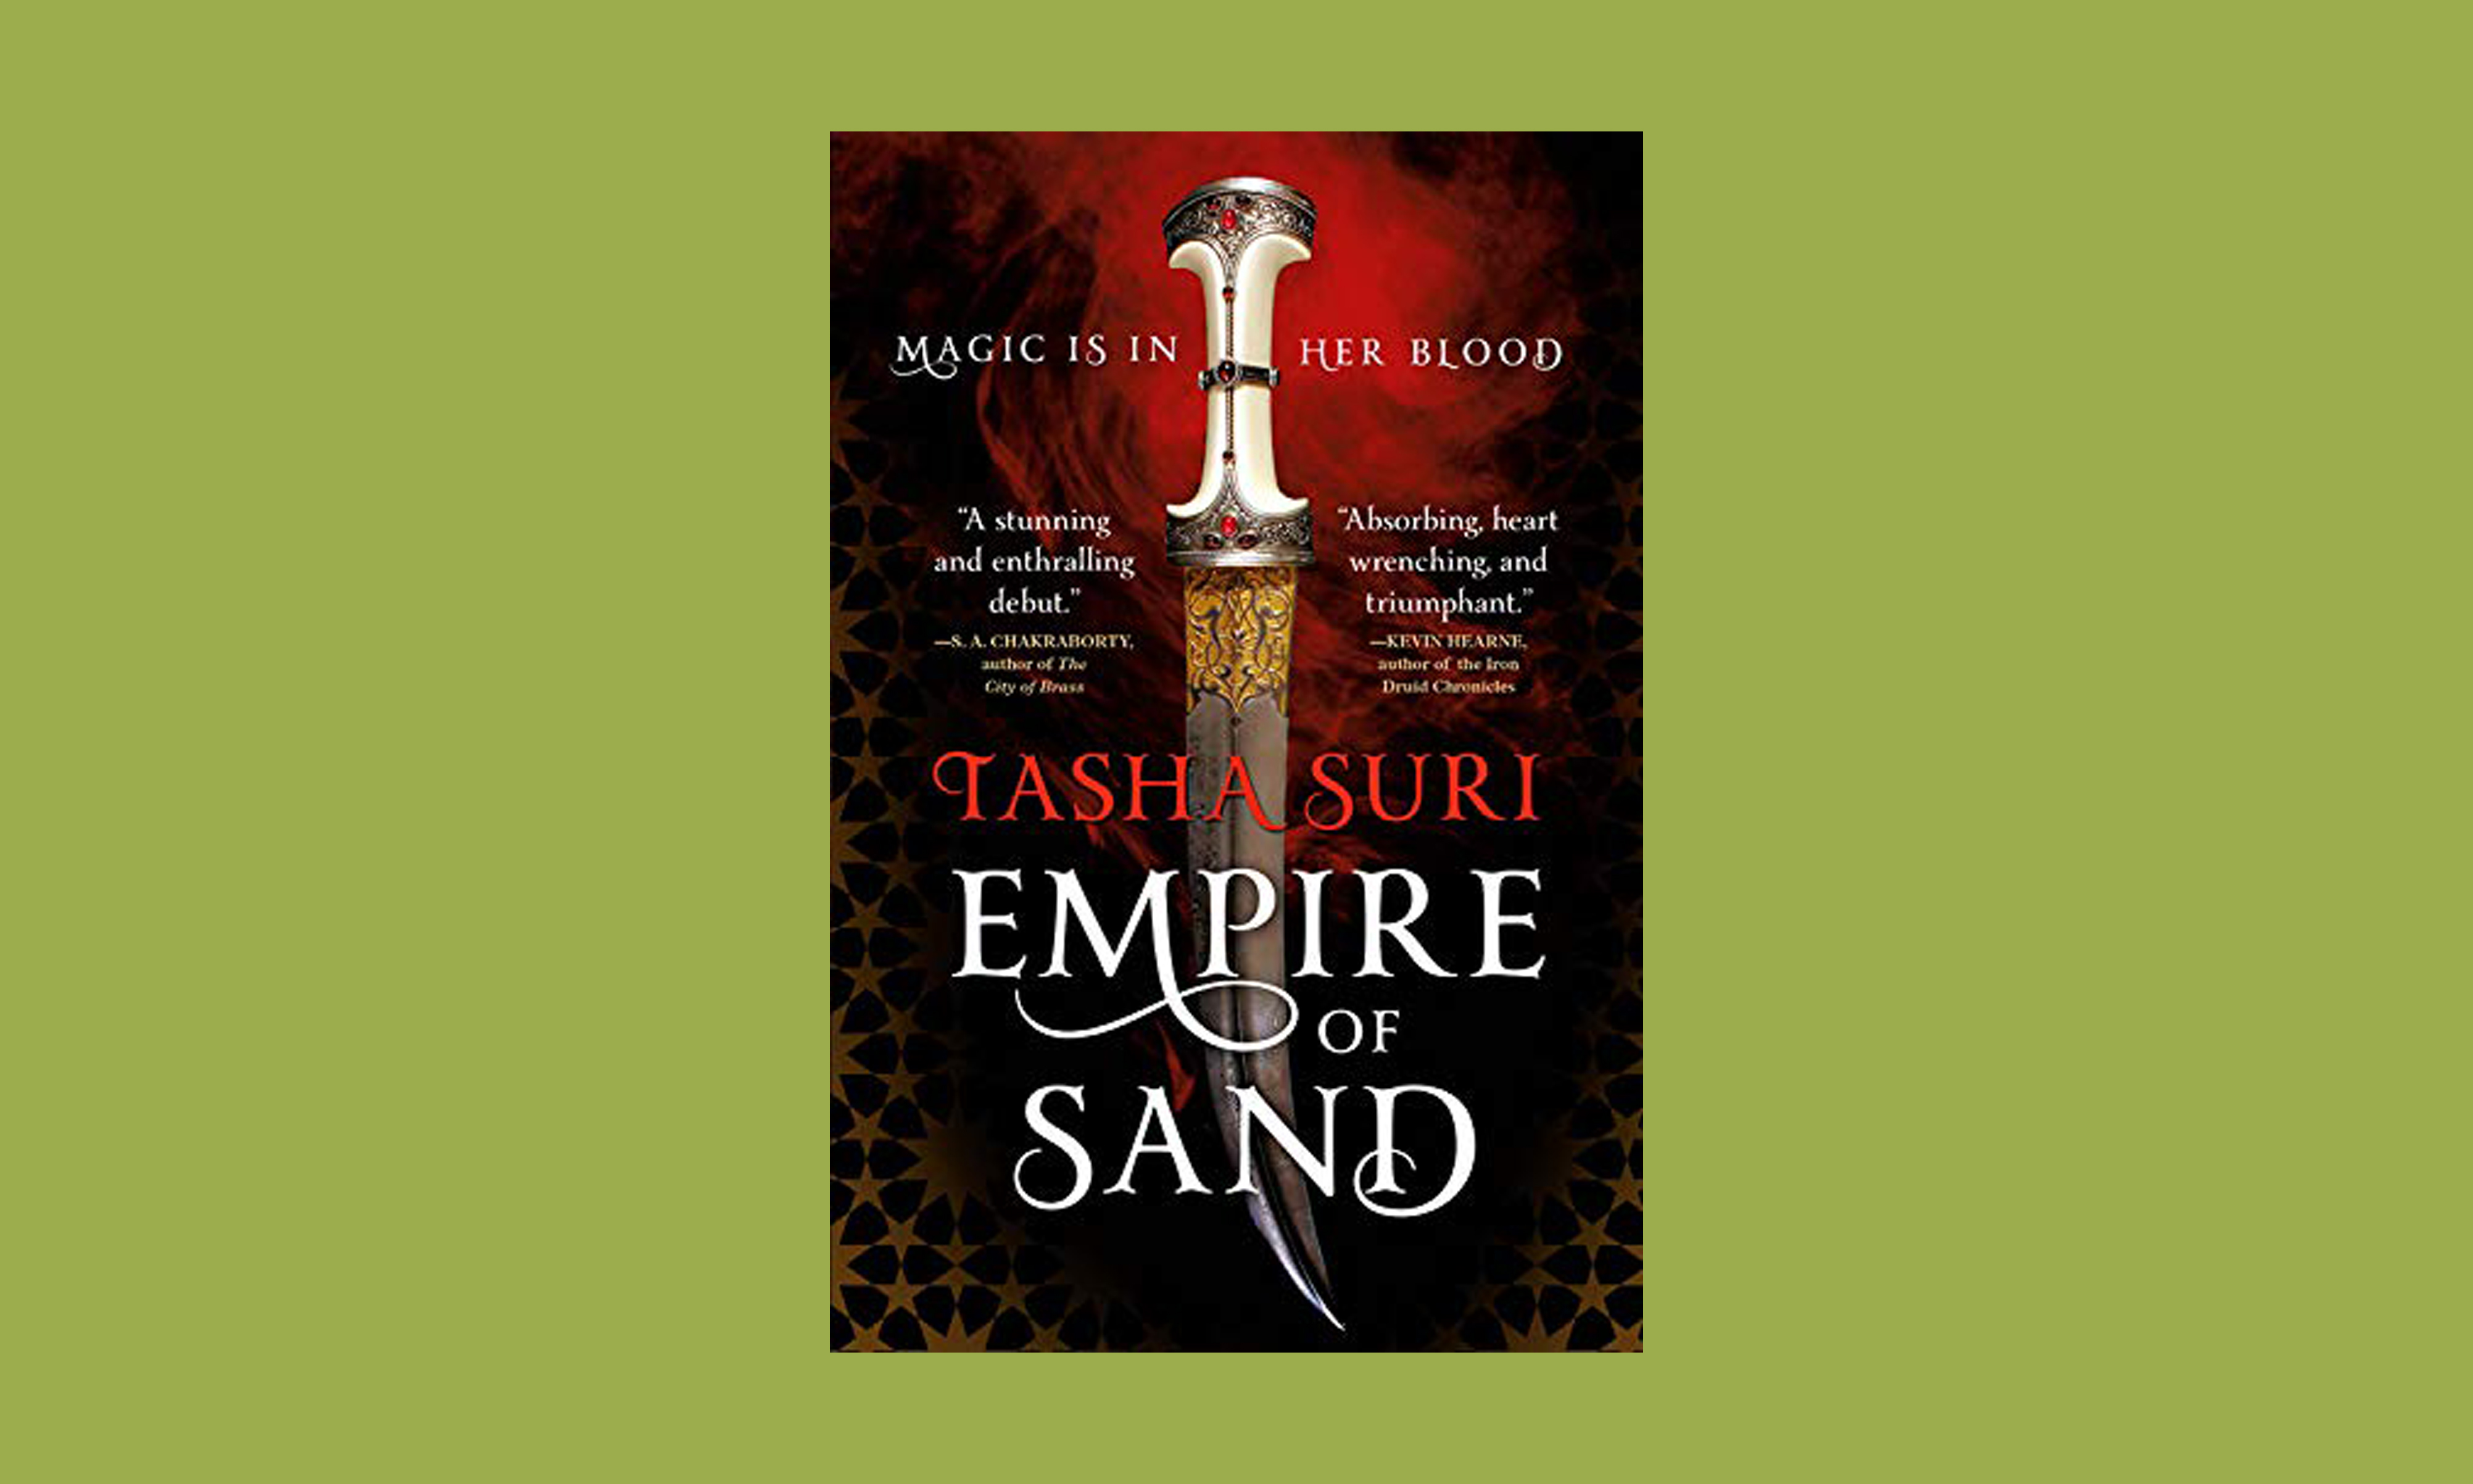 Empire of Sand Tasha Suri